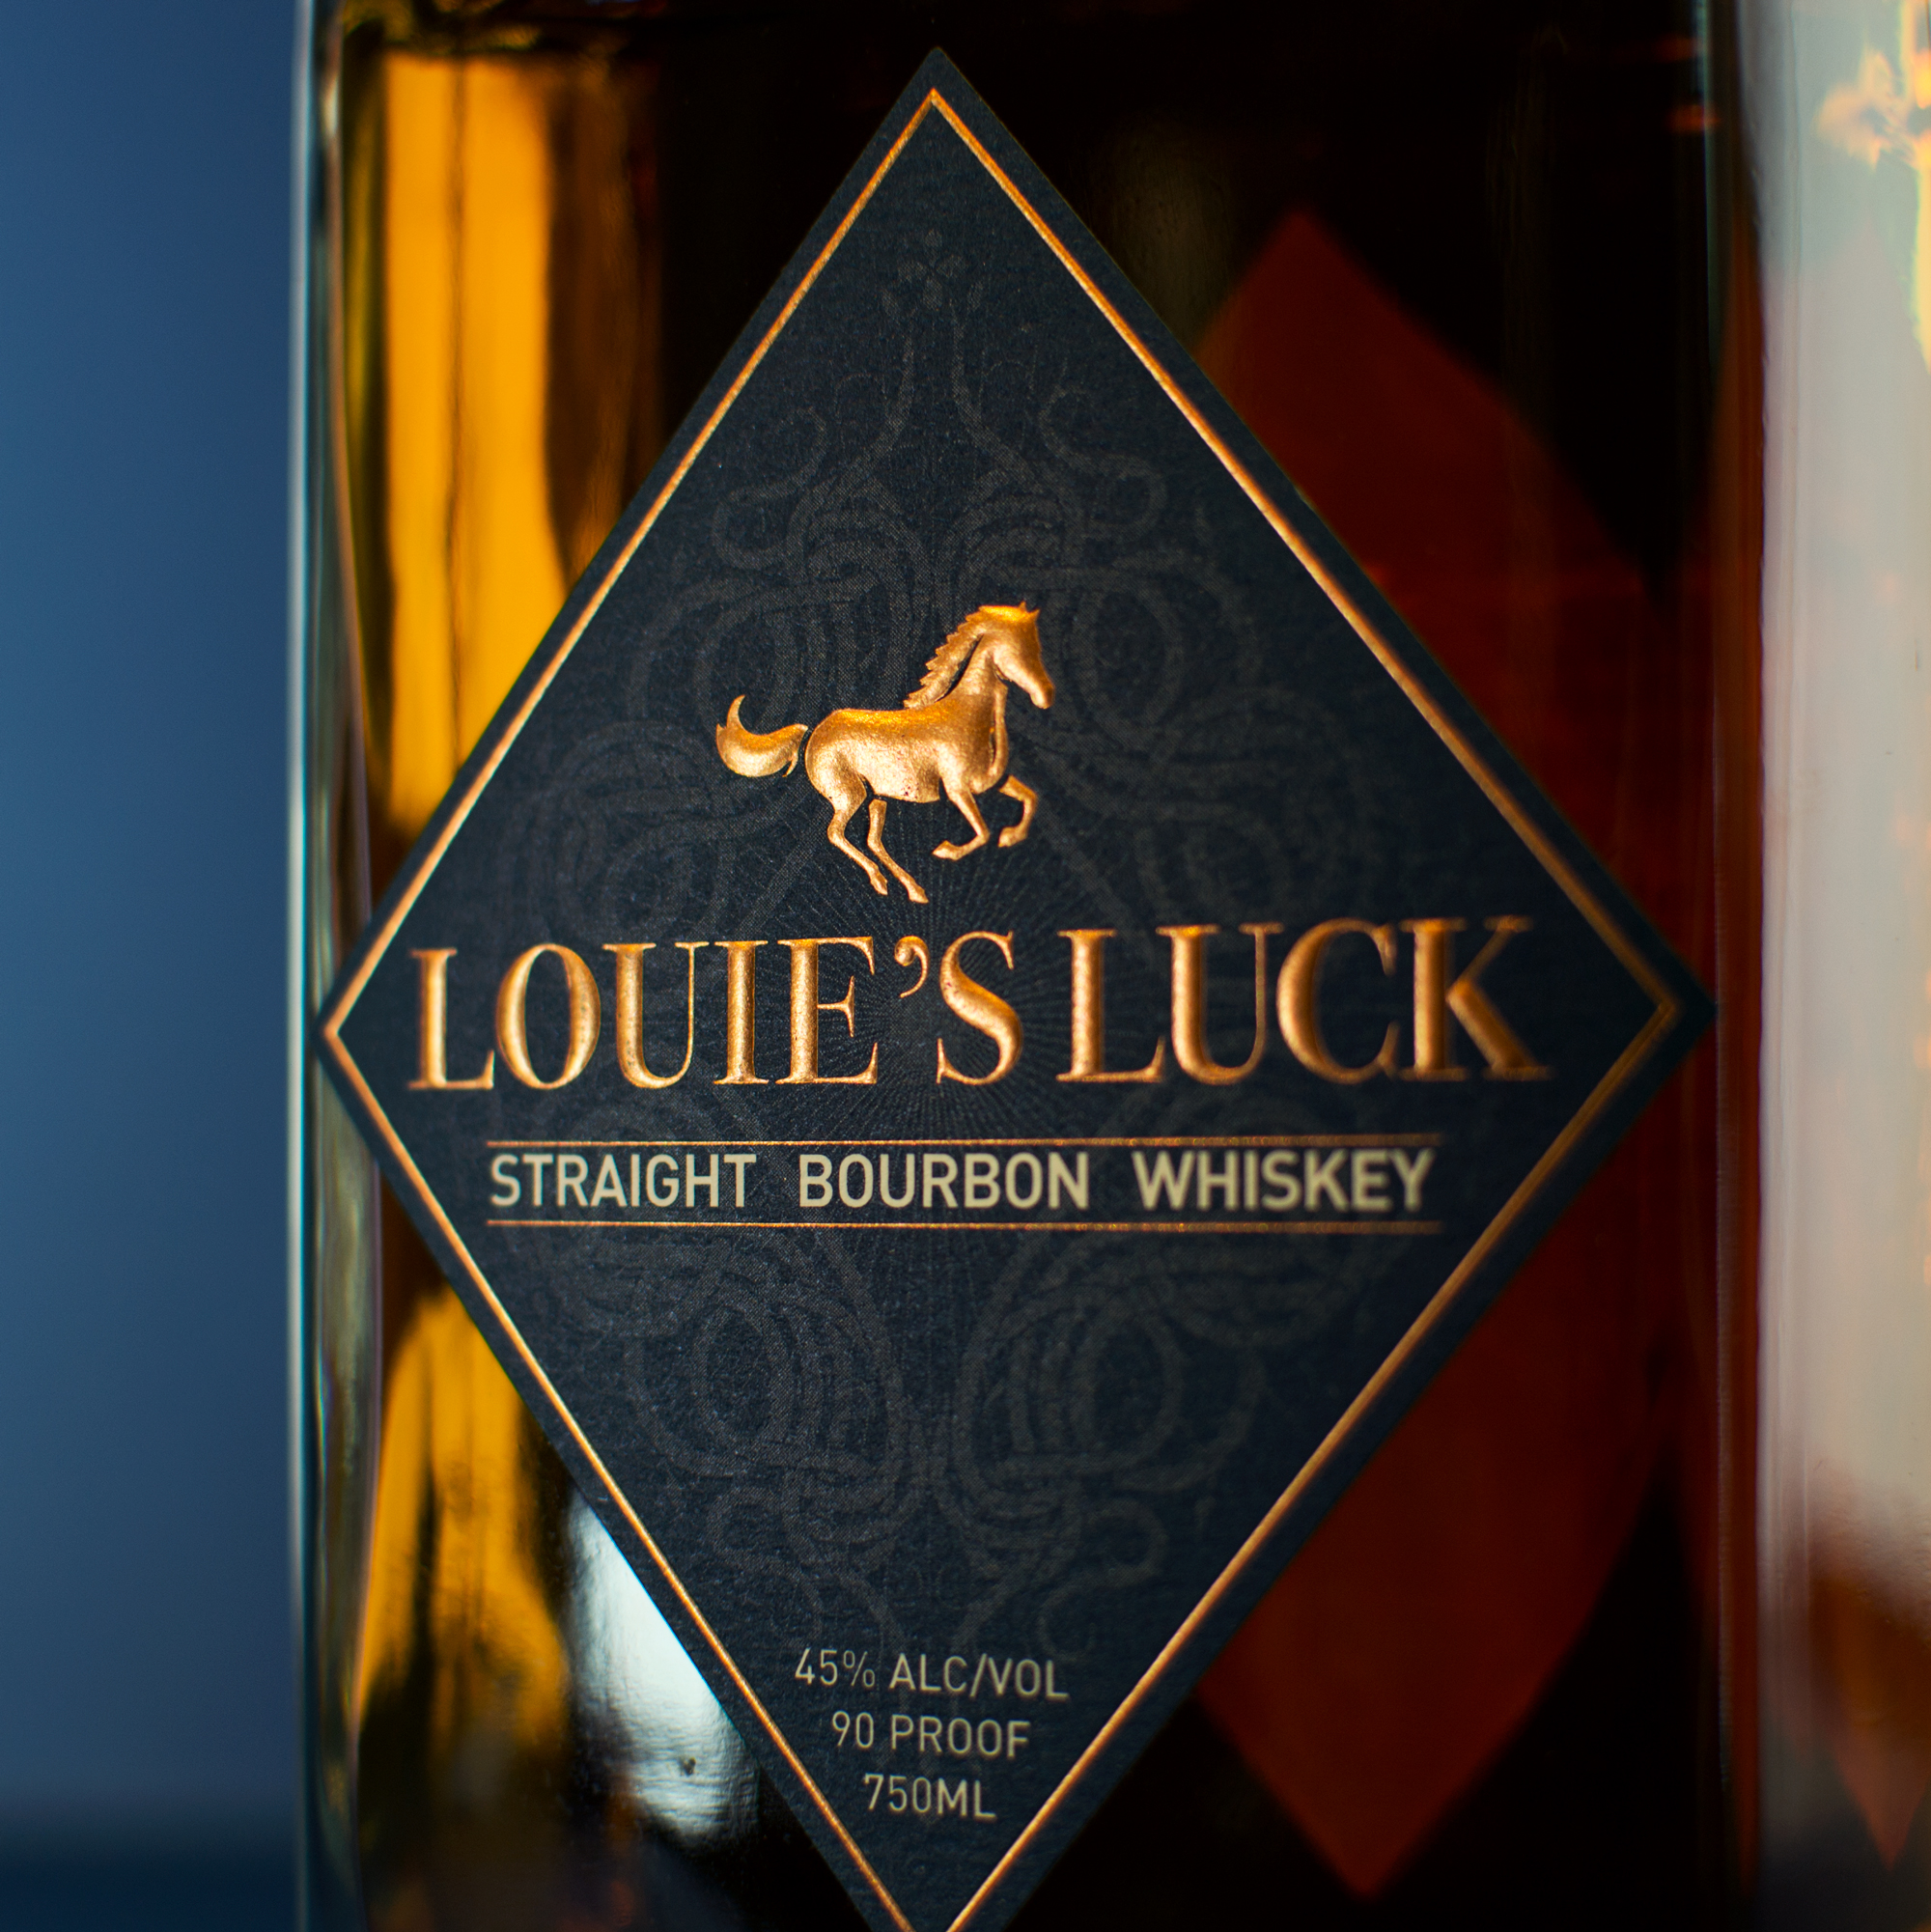 Louie's Luck Bourbon